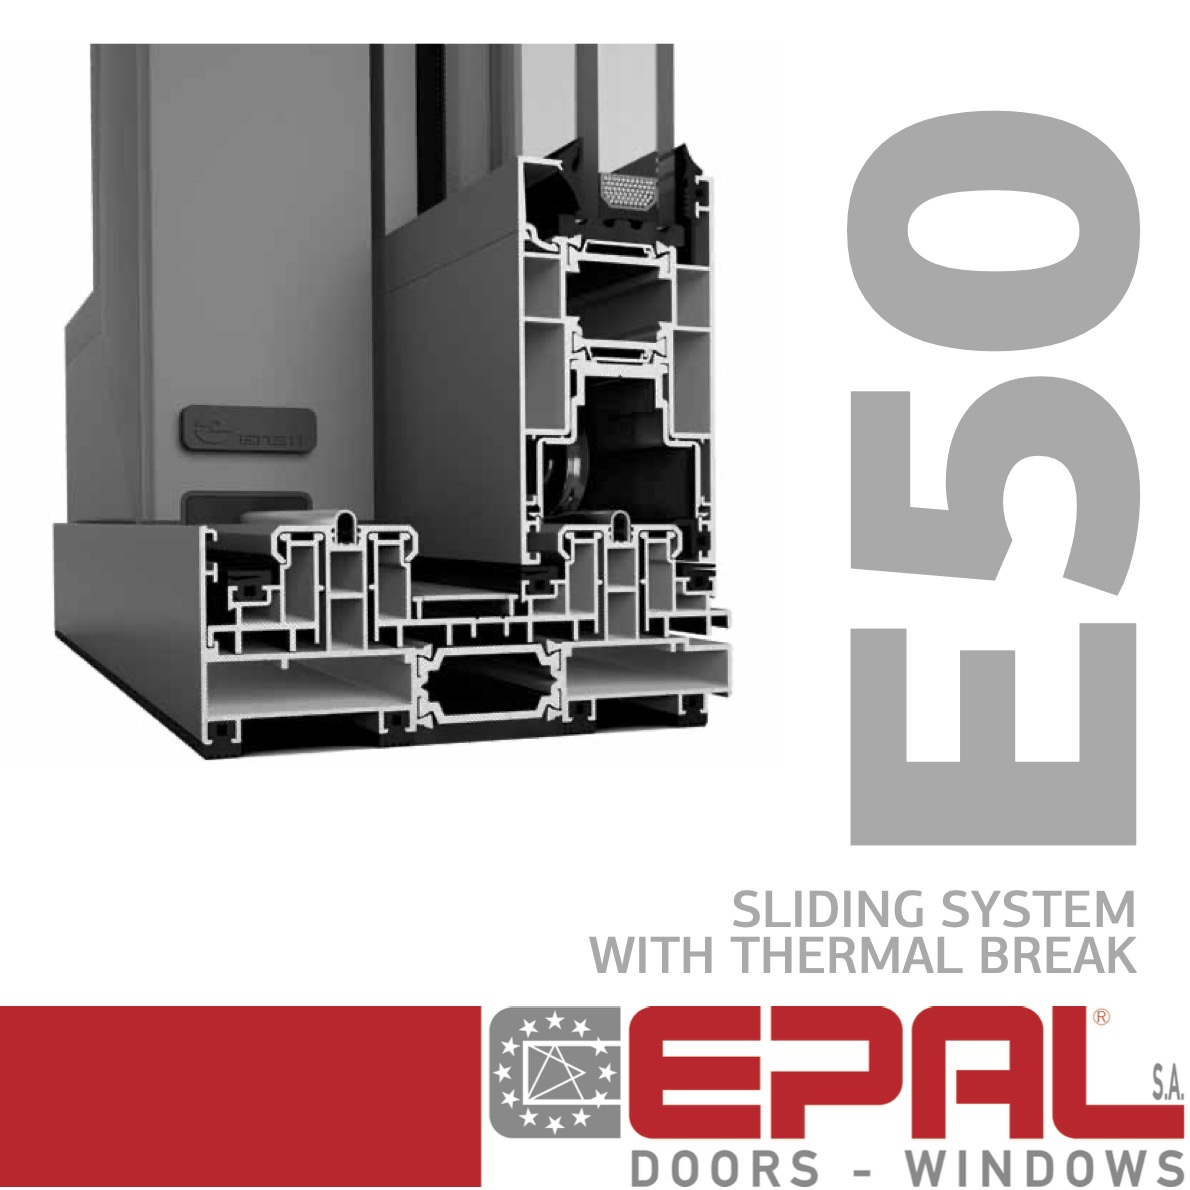 E50 - Sliding System with Thermal Break